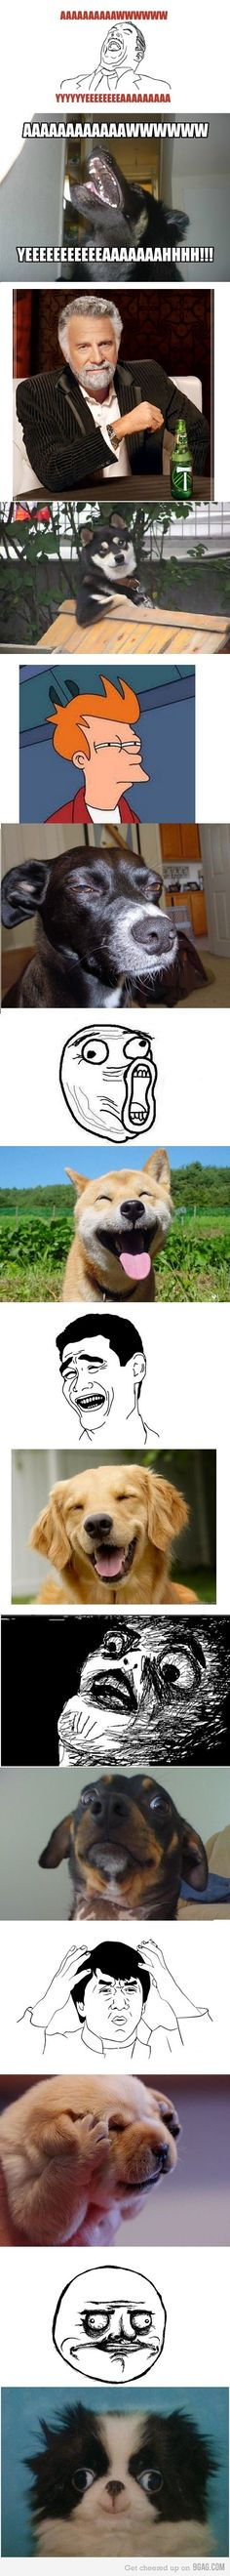 Dog memes. Mother of awesomess